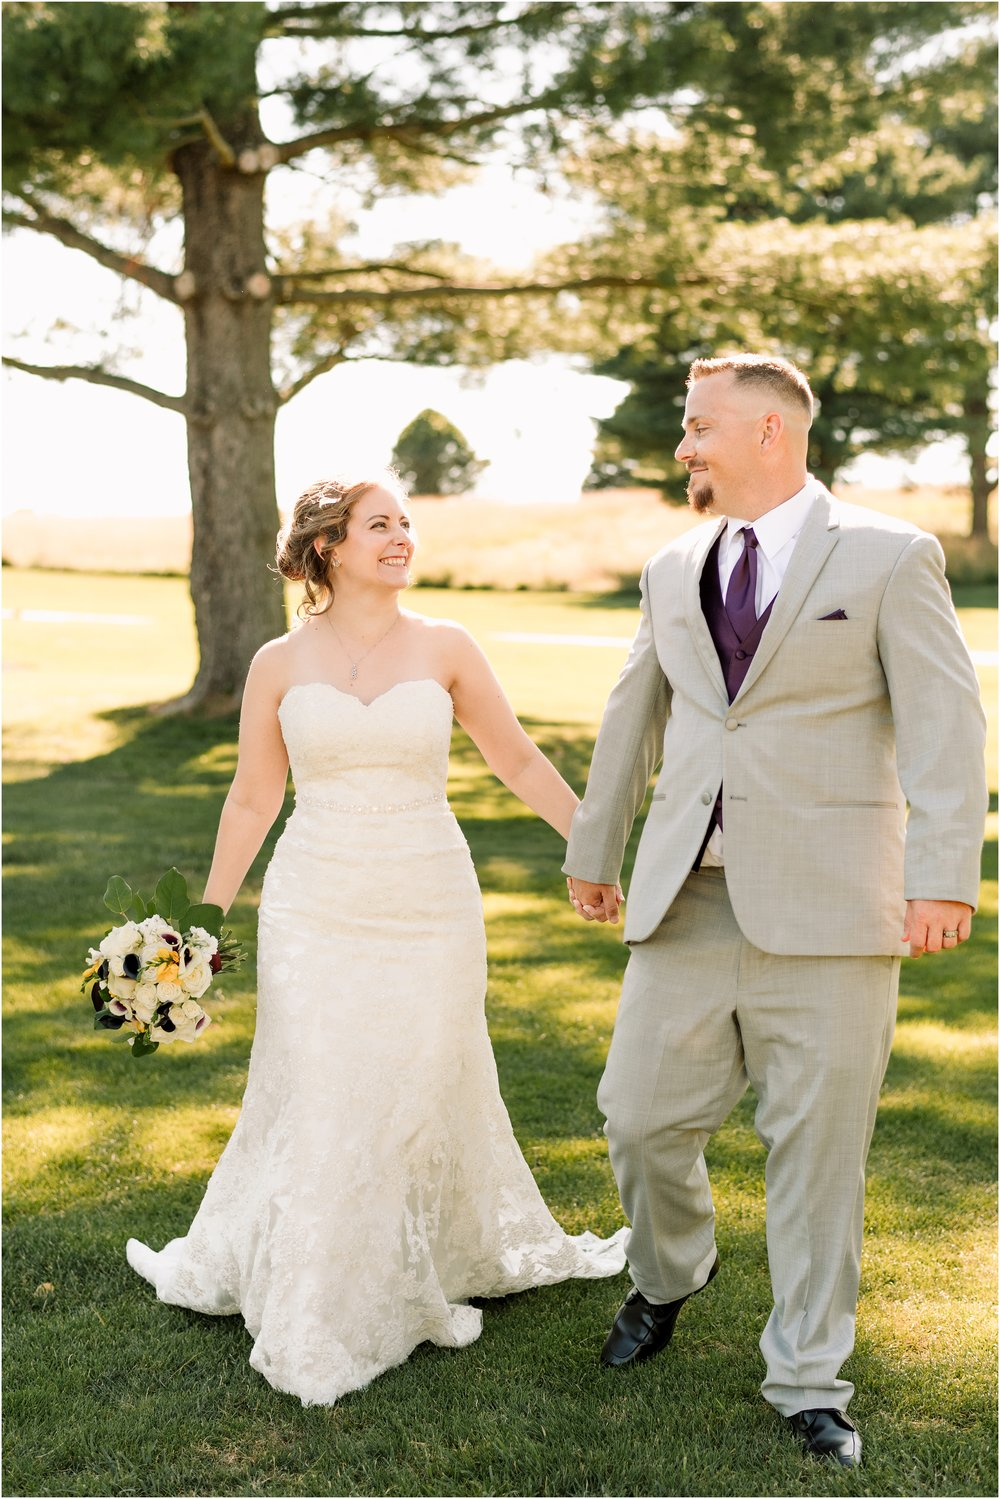 hannah leigh photography Piney Branch Golf Club Wedding Upperco MD_0465.jpg